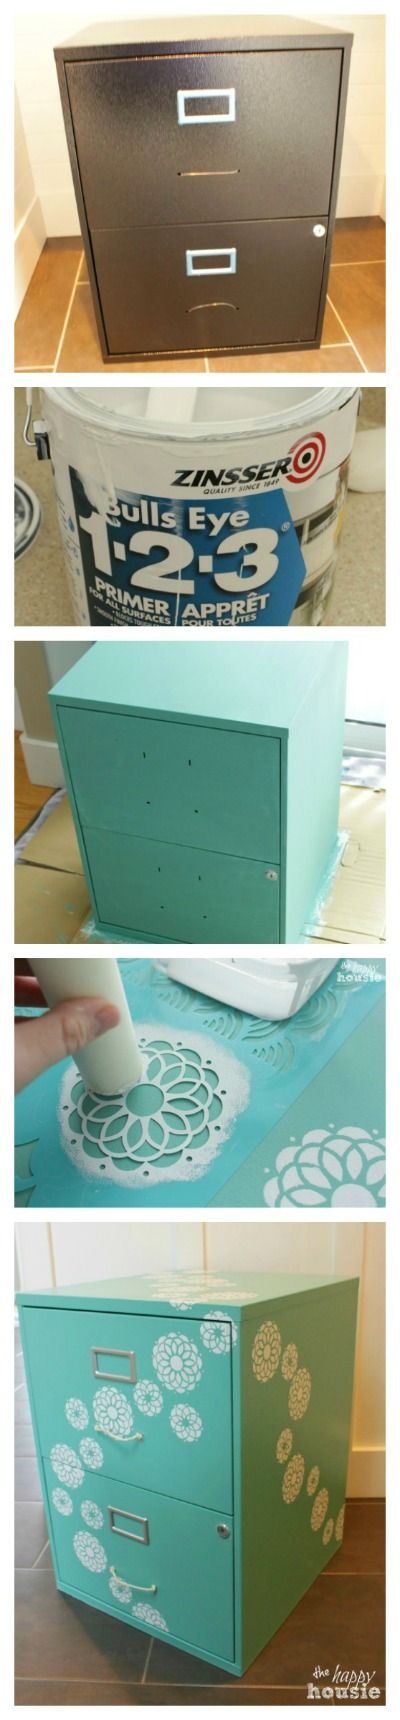 How to transform a boring and basic filing cabinet into something FUN and functional  - using Country Chic Bliss and Simpicity Chalk Paint - full tutorial at The Happy Housie